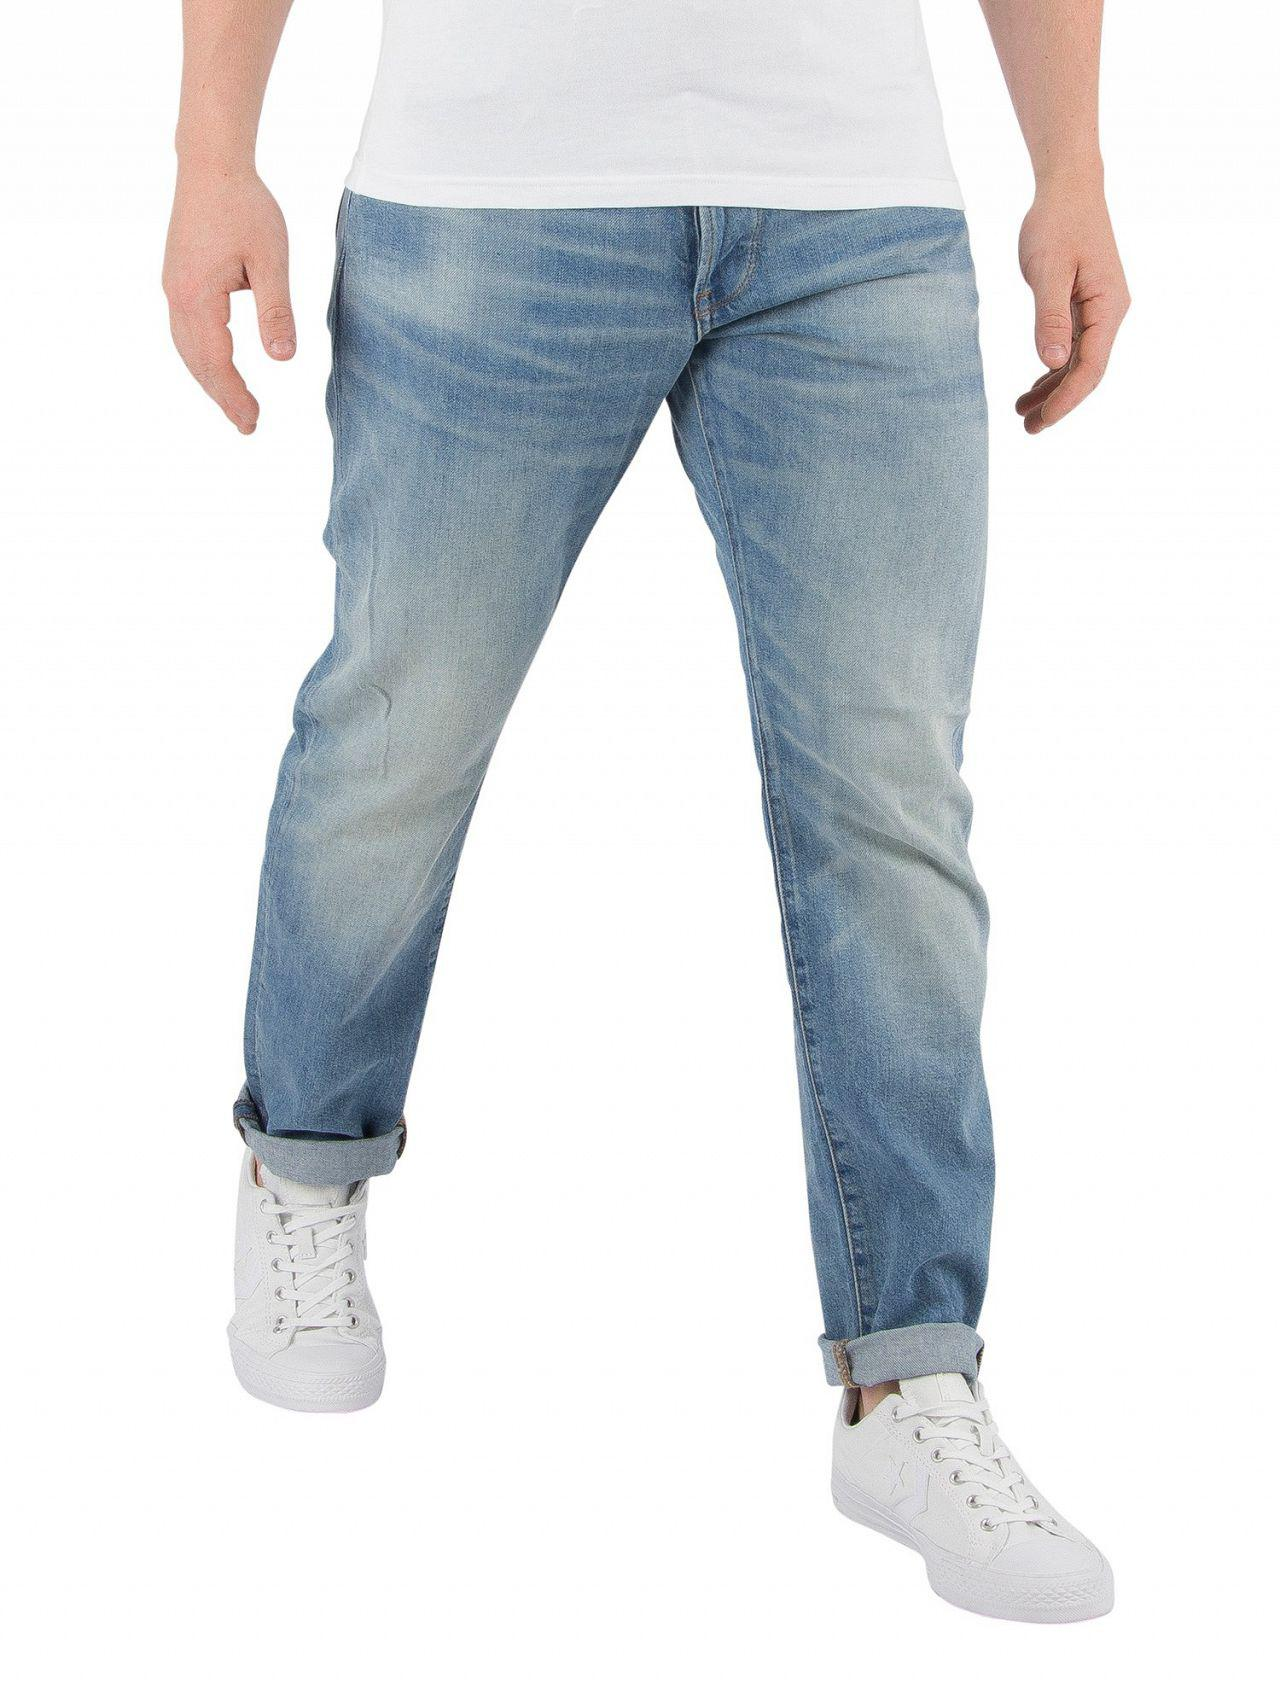 414435158df G-Star RAW Medium Vintage Aged 3301 Straight Tapered Jeans in Blue ...